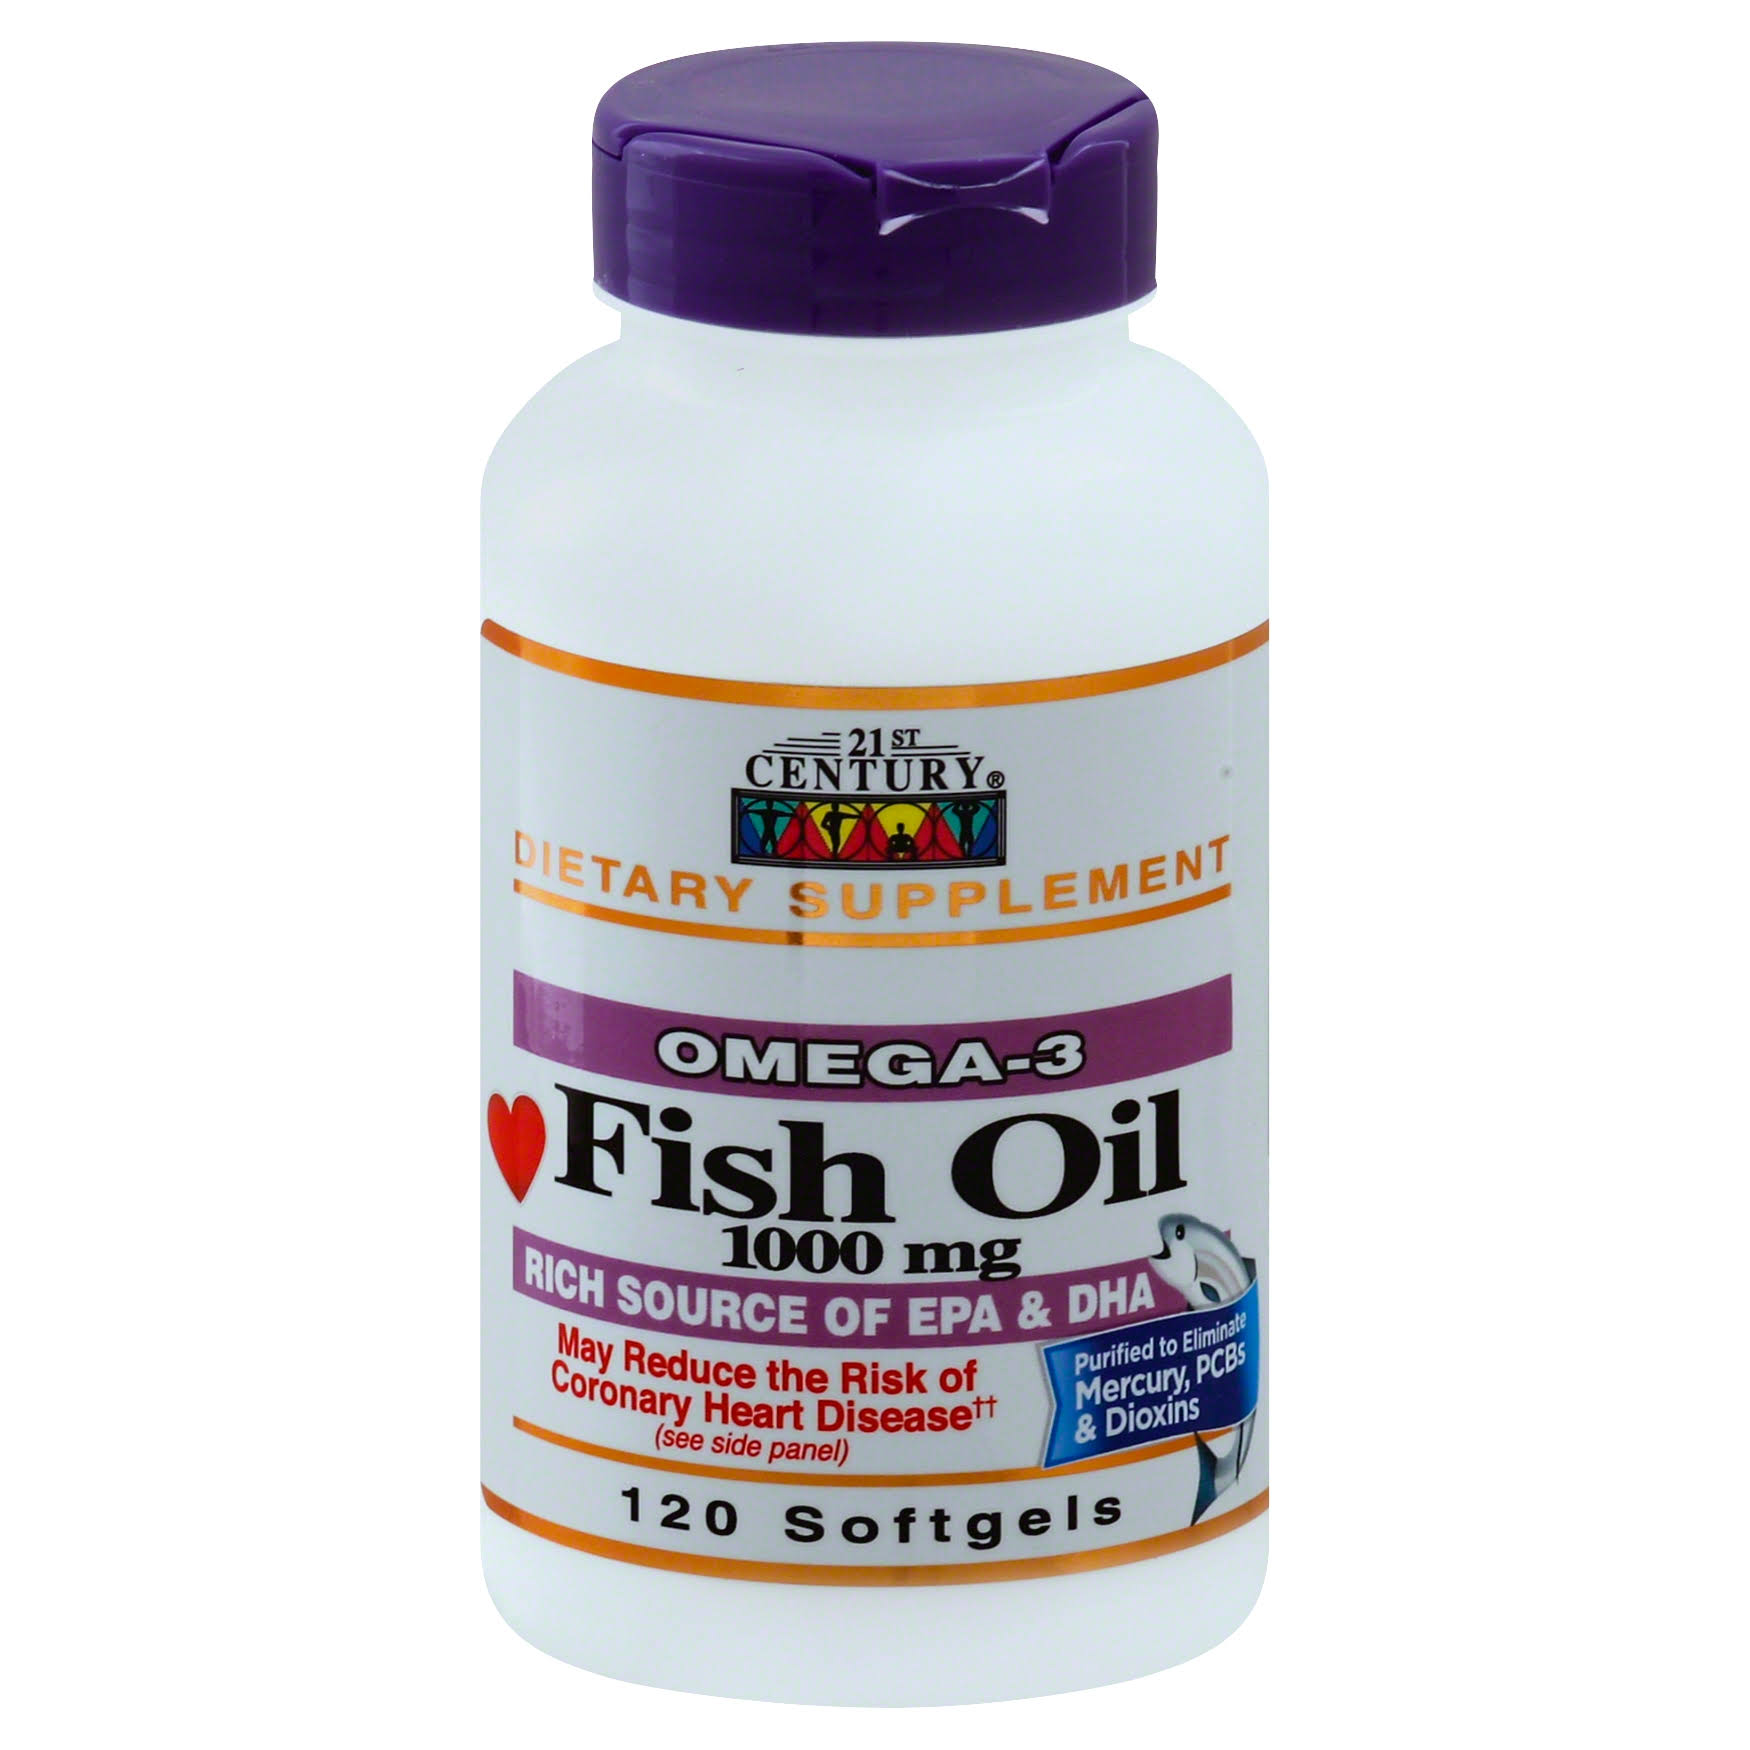 21st Century Omega-3 Fish Oil 1000mg Softgels - x120